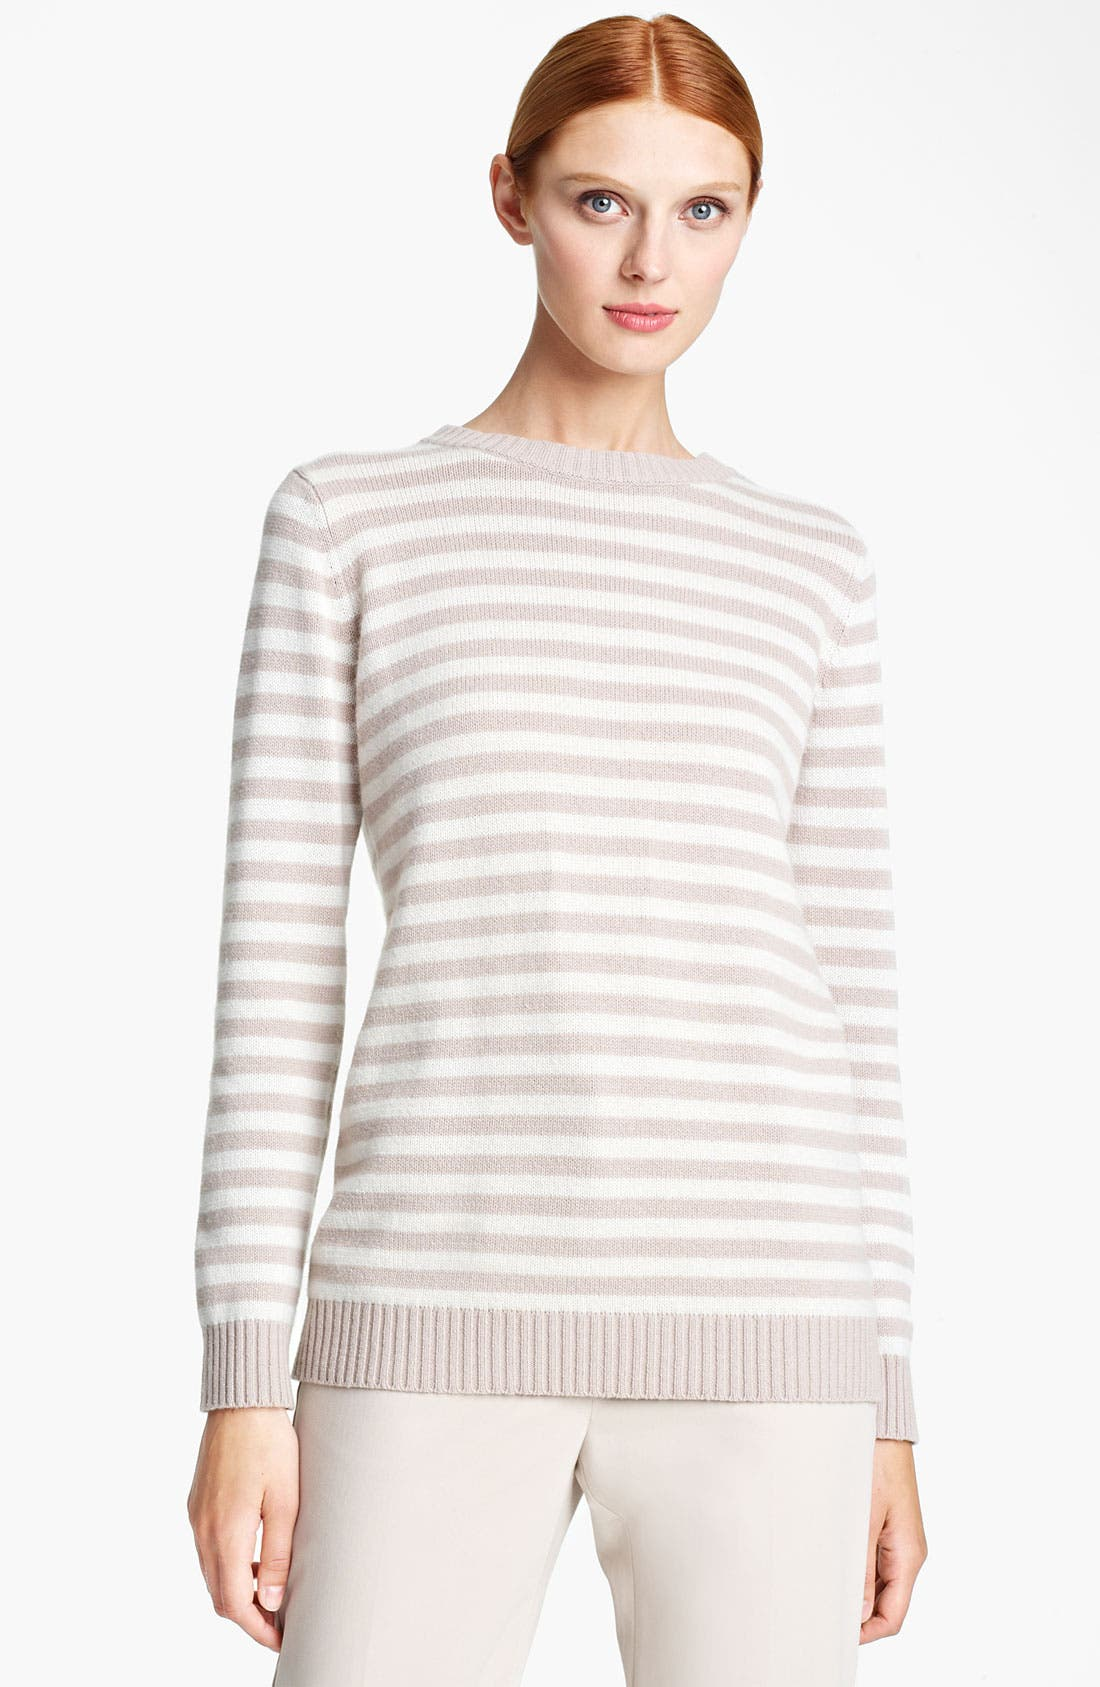 Main Image - Max Mara 'Auronzo' Striped Cashmere & Cotton Sweater